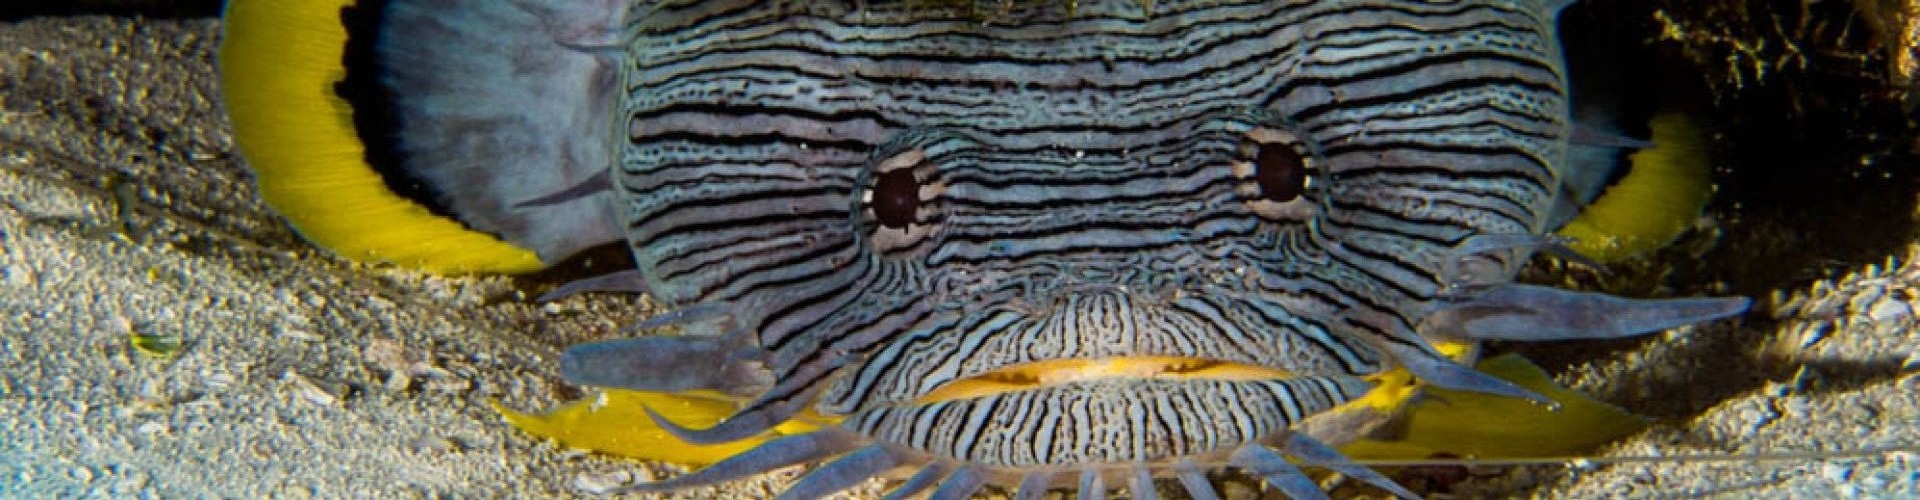 Cozumel Splendid Toadfish